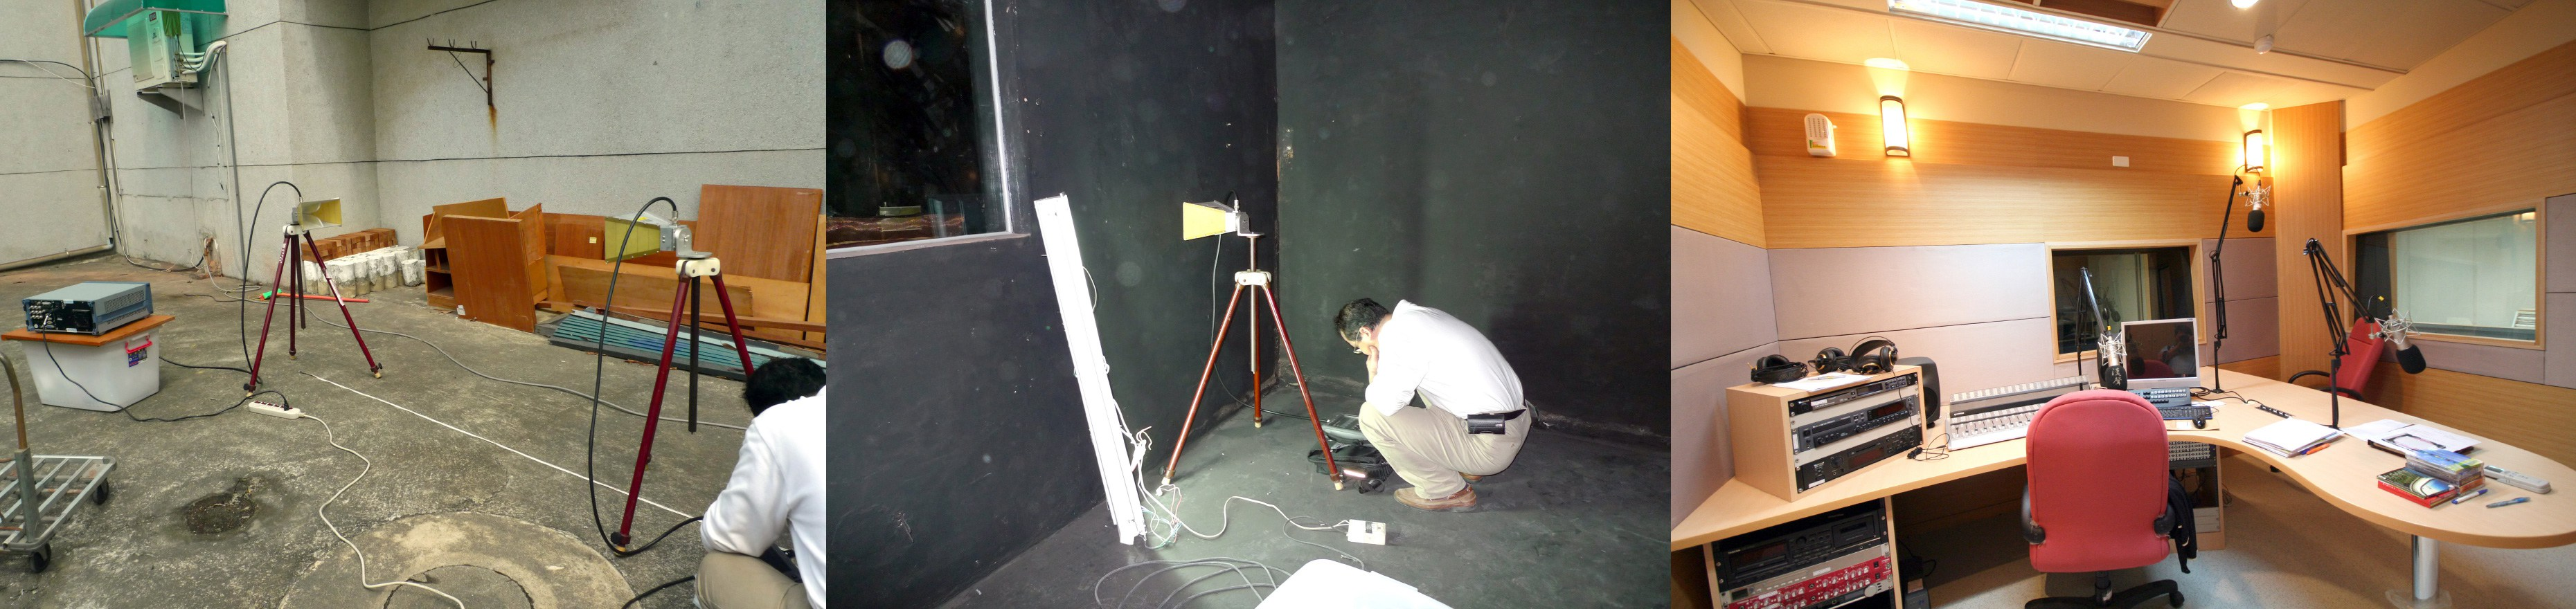 Recording studio uses RF Paint to optimize sound quality